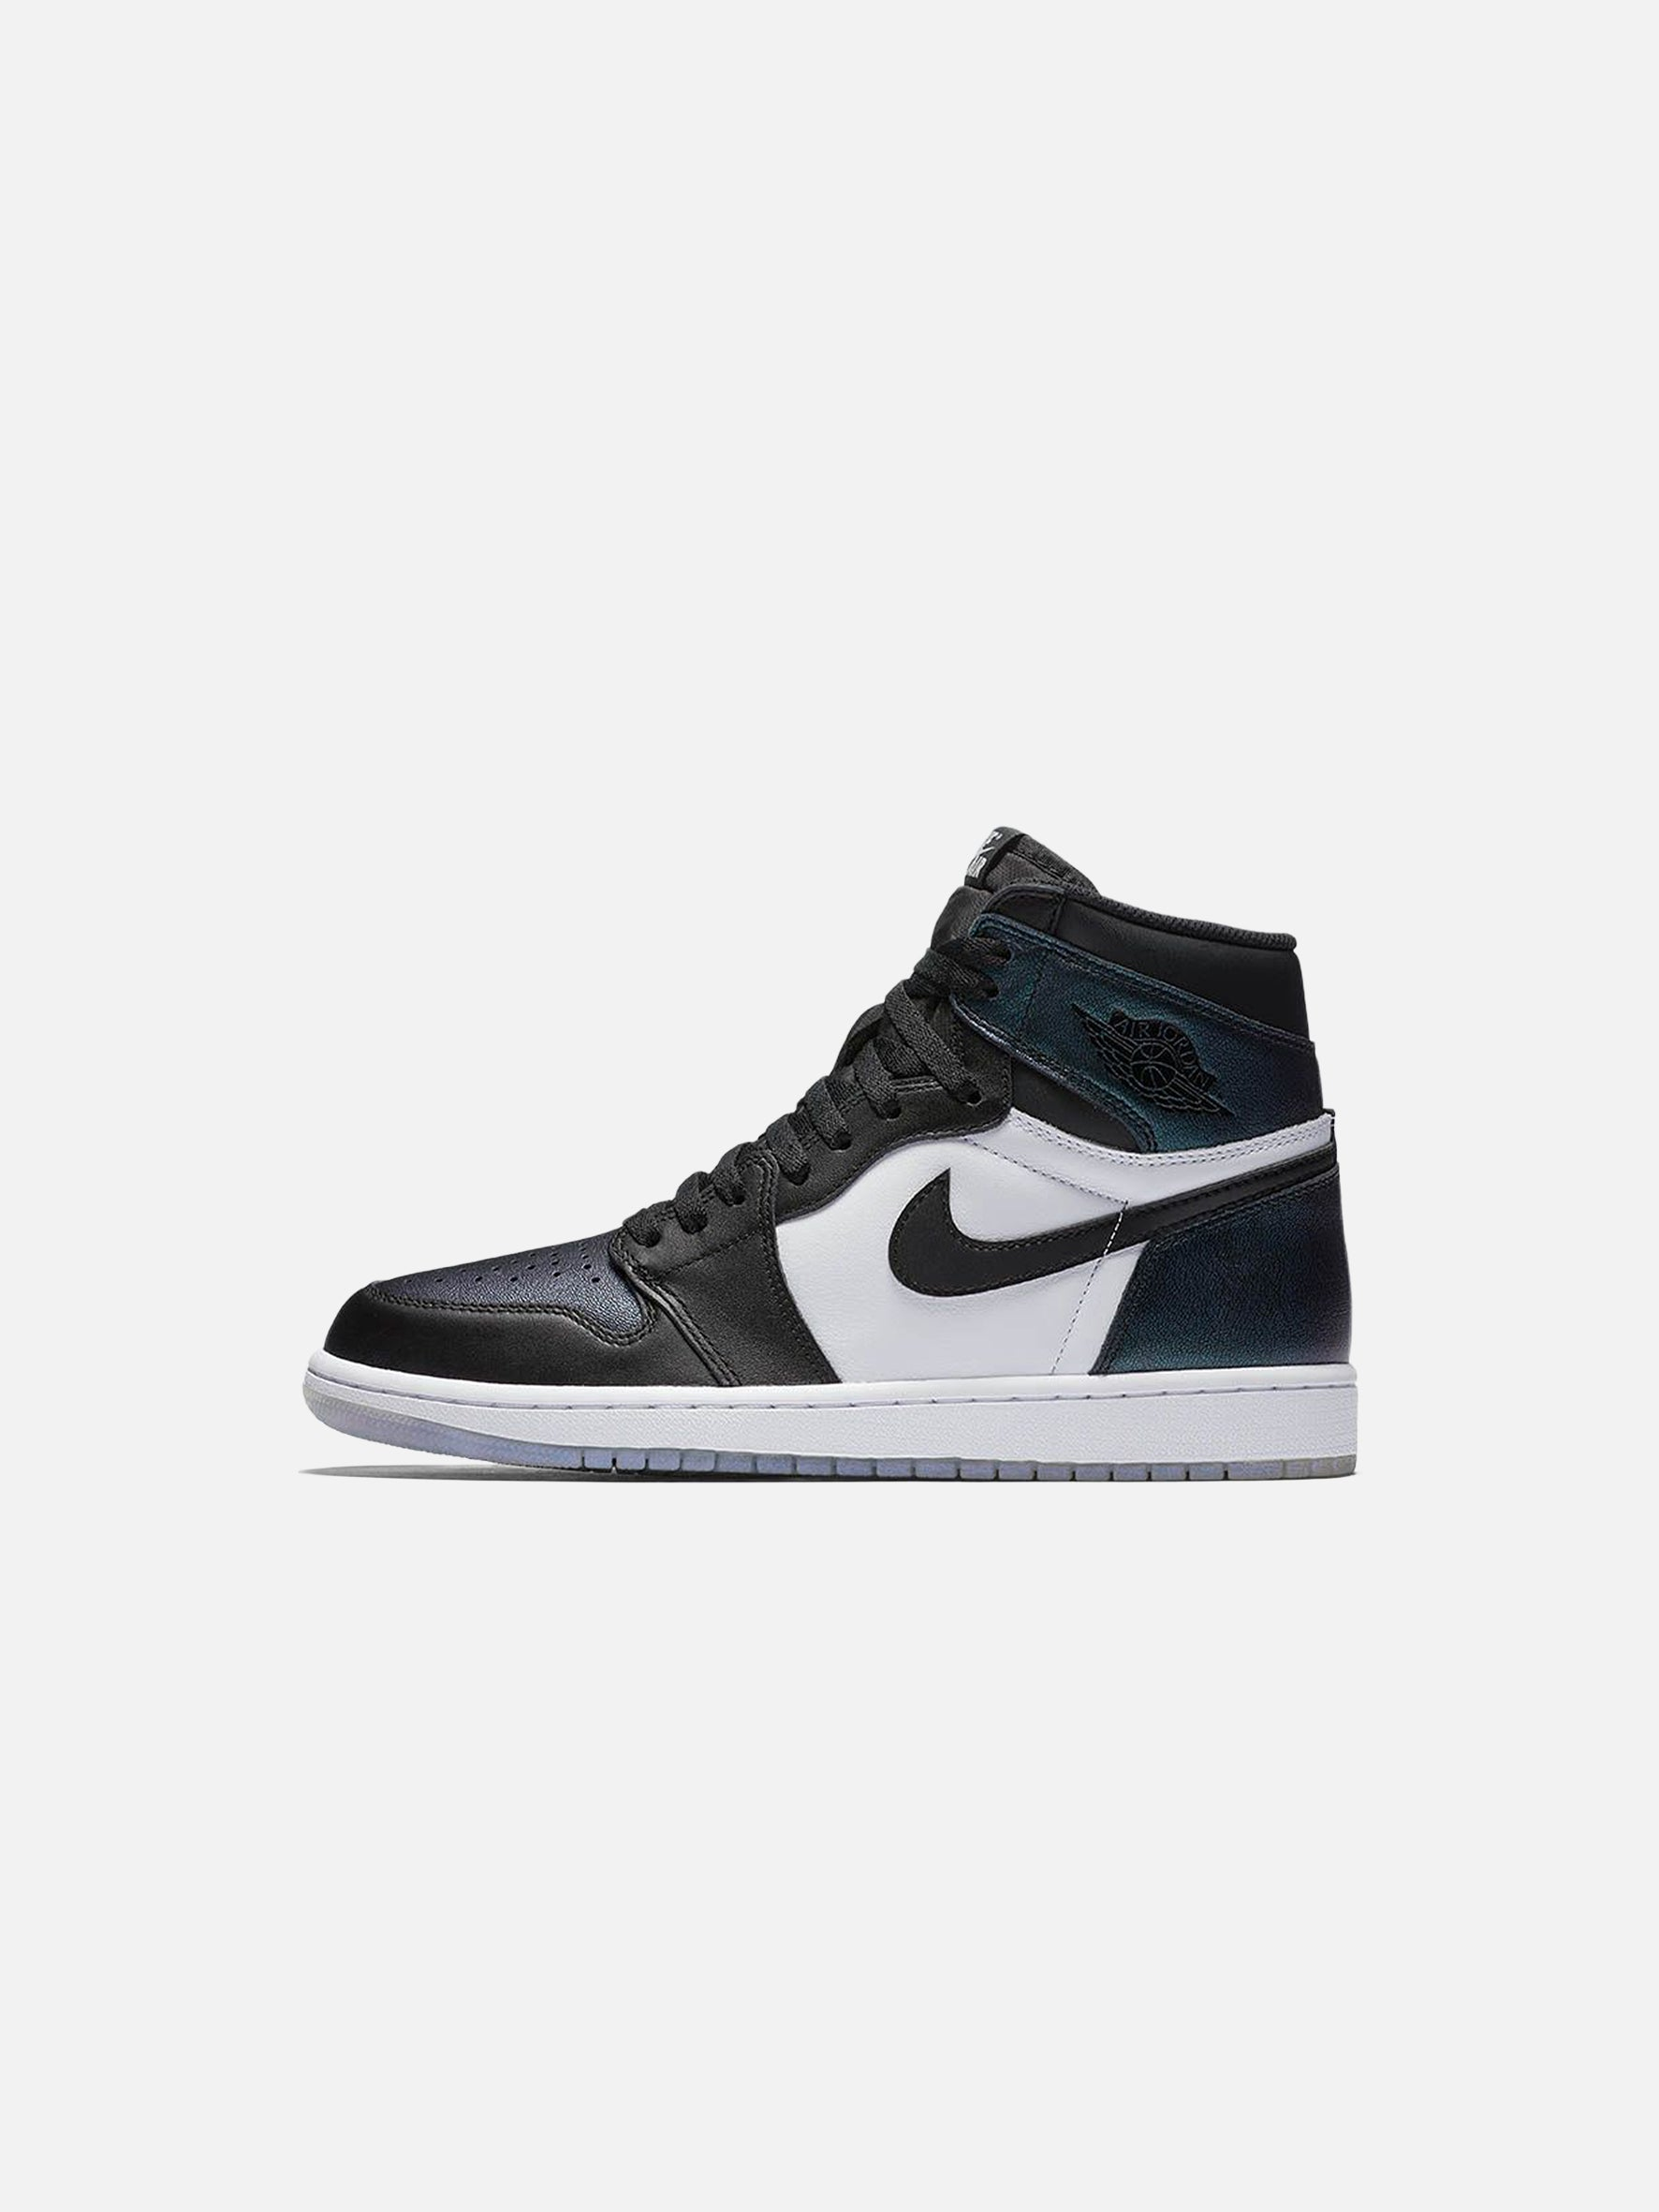 Nike Air Jordan 1 Retro All Star Chameleon